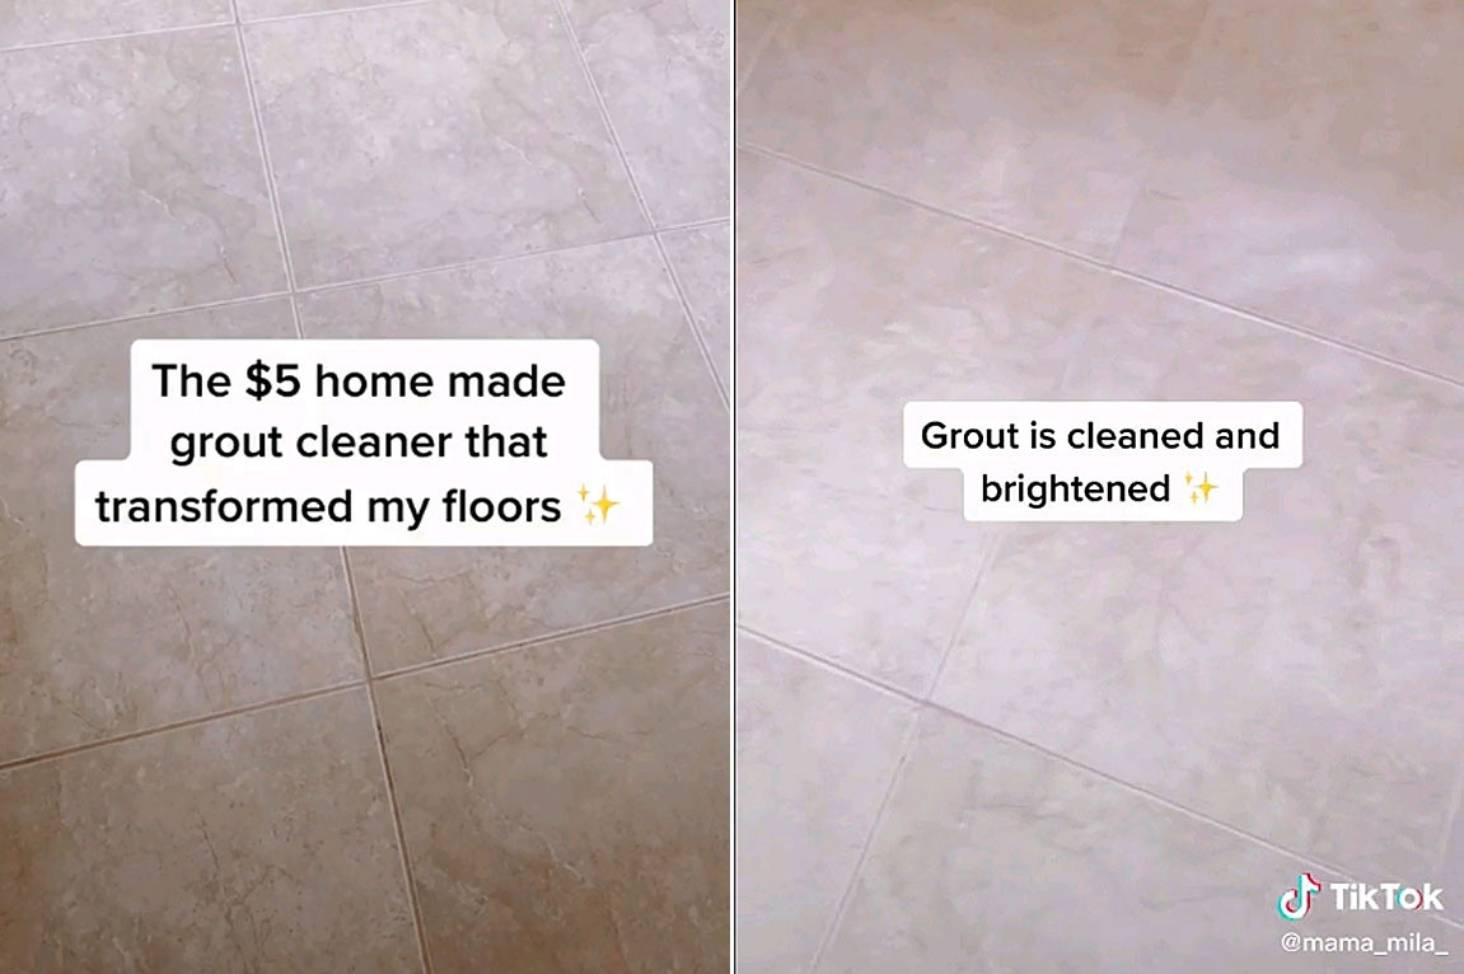 5 homemade grout cleaning hack that